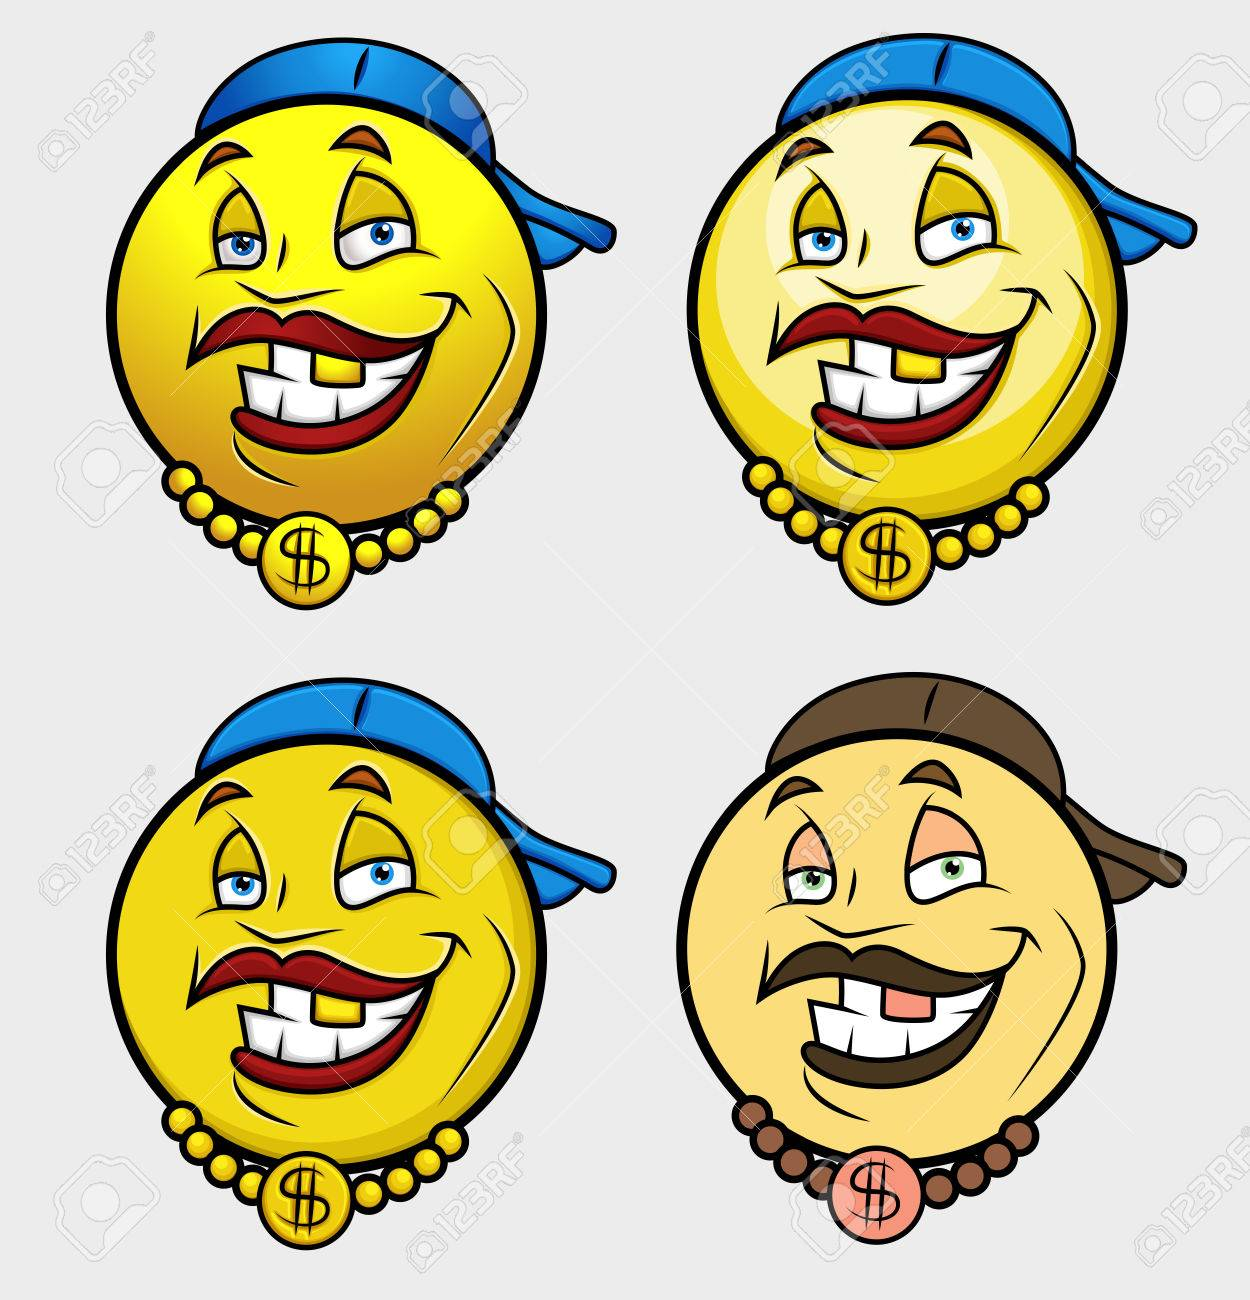 Lotus Notes Emoticons 982 Funny Singer Stock Illustrations Cliparts And Royalty Free